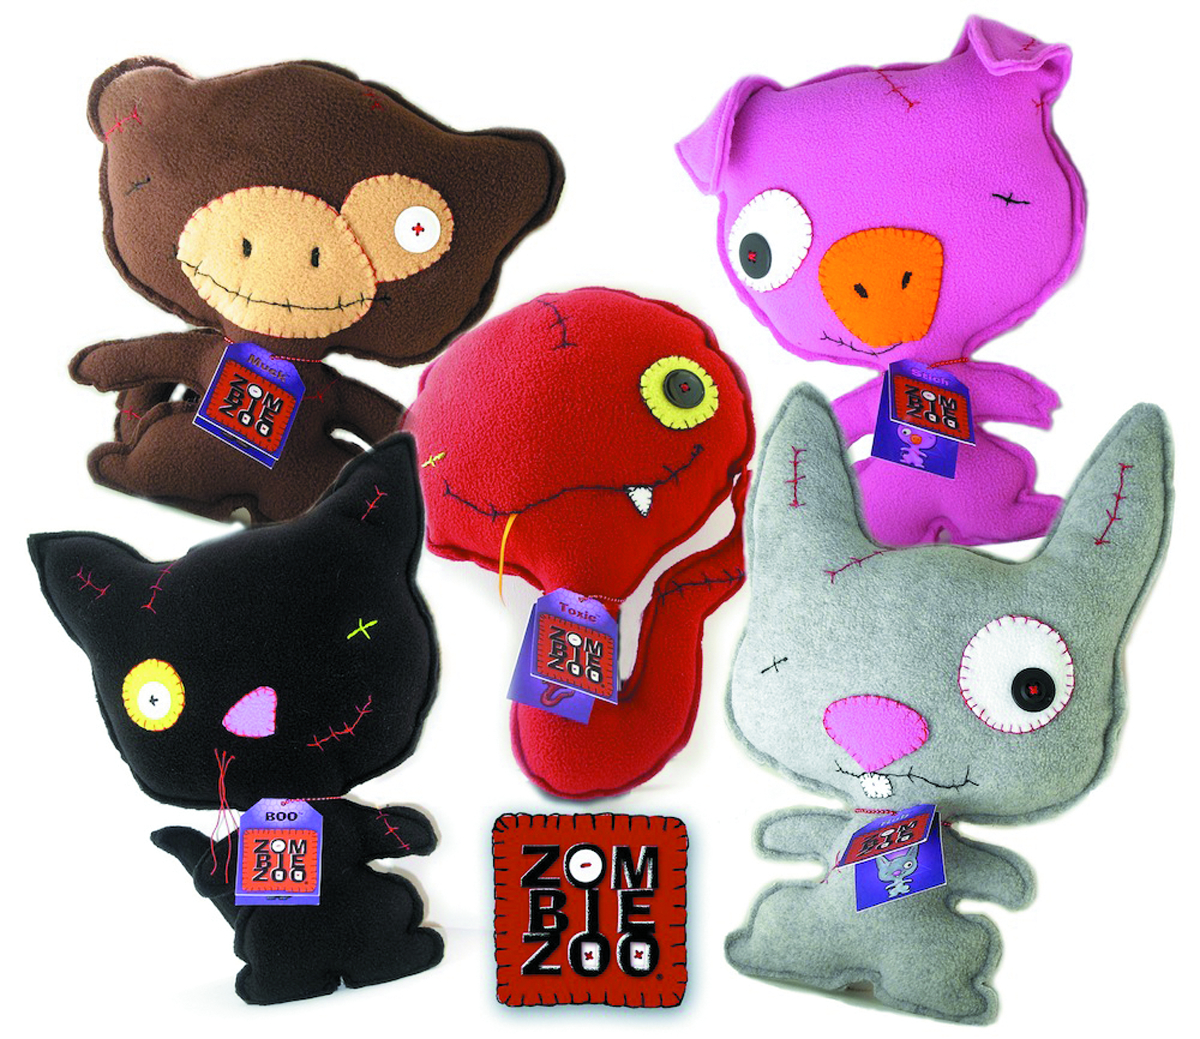 ZOMBIE ZOO 13IN BOO CLASSIC PLUSH